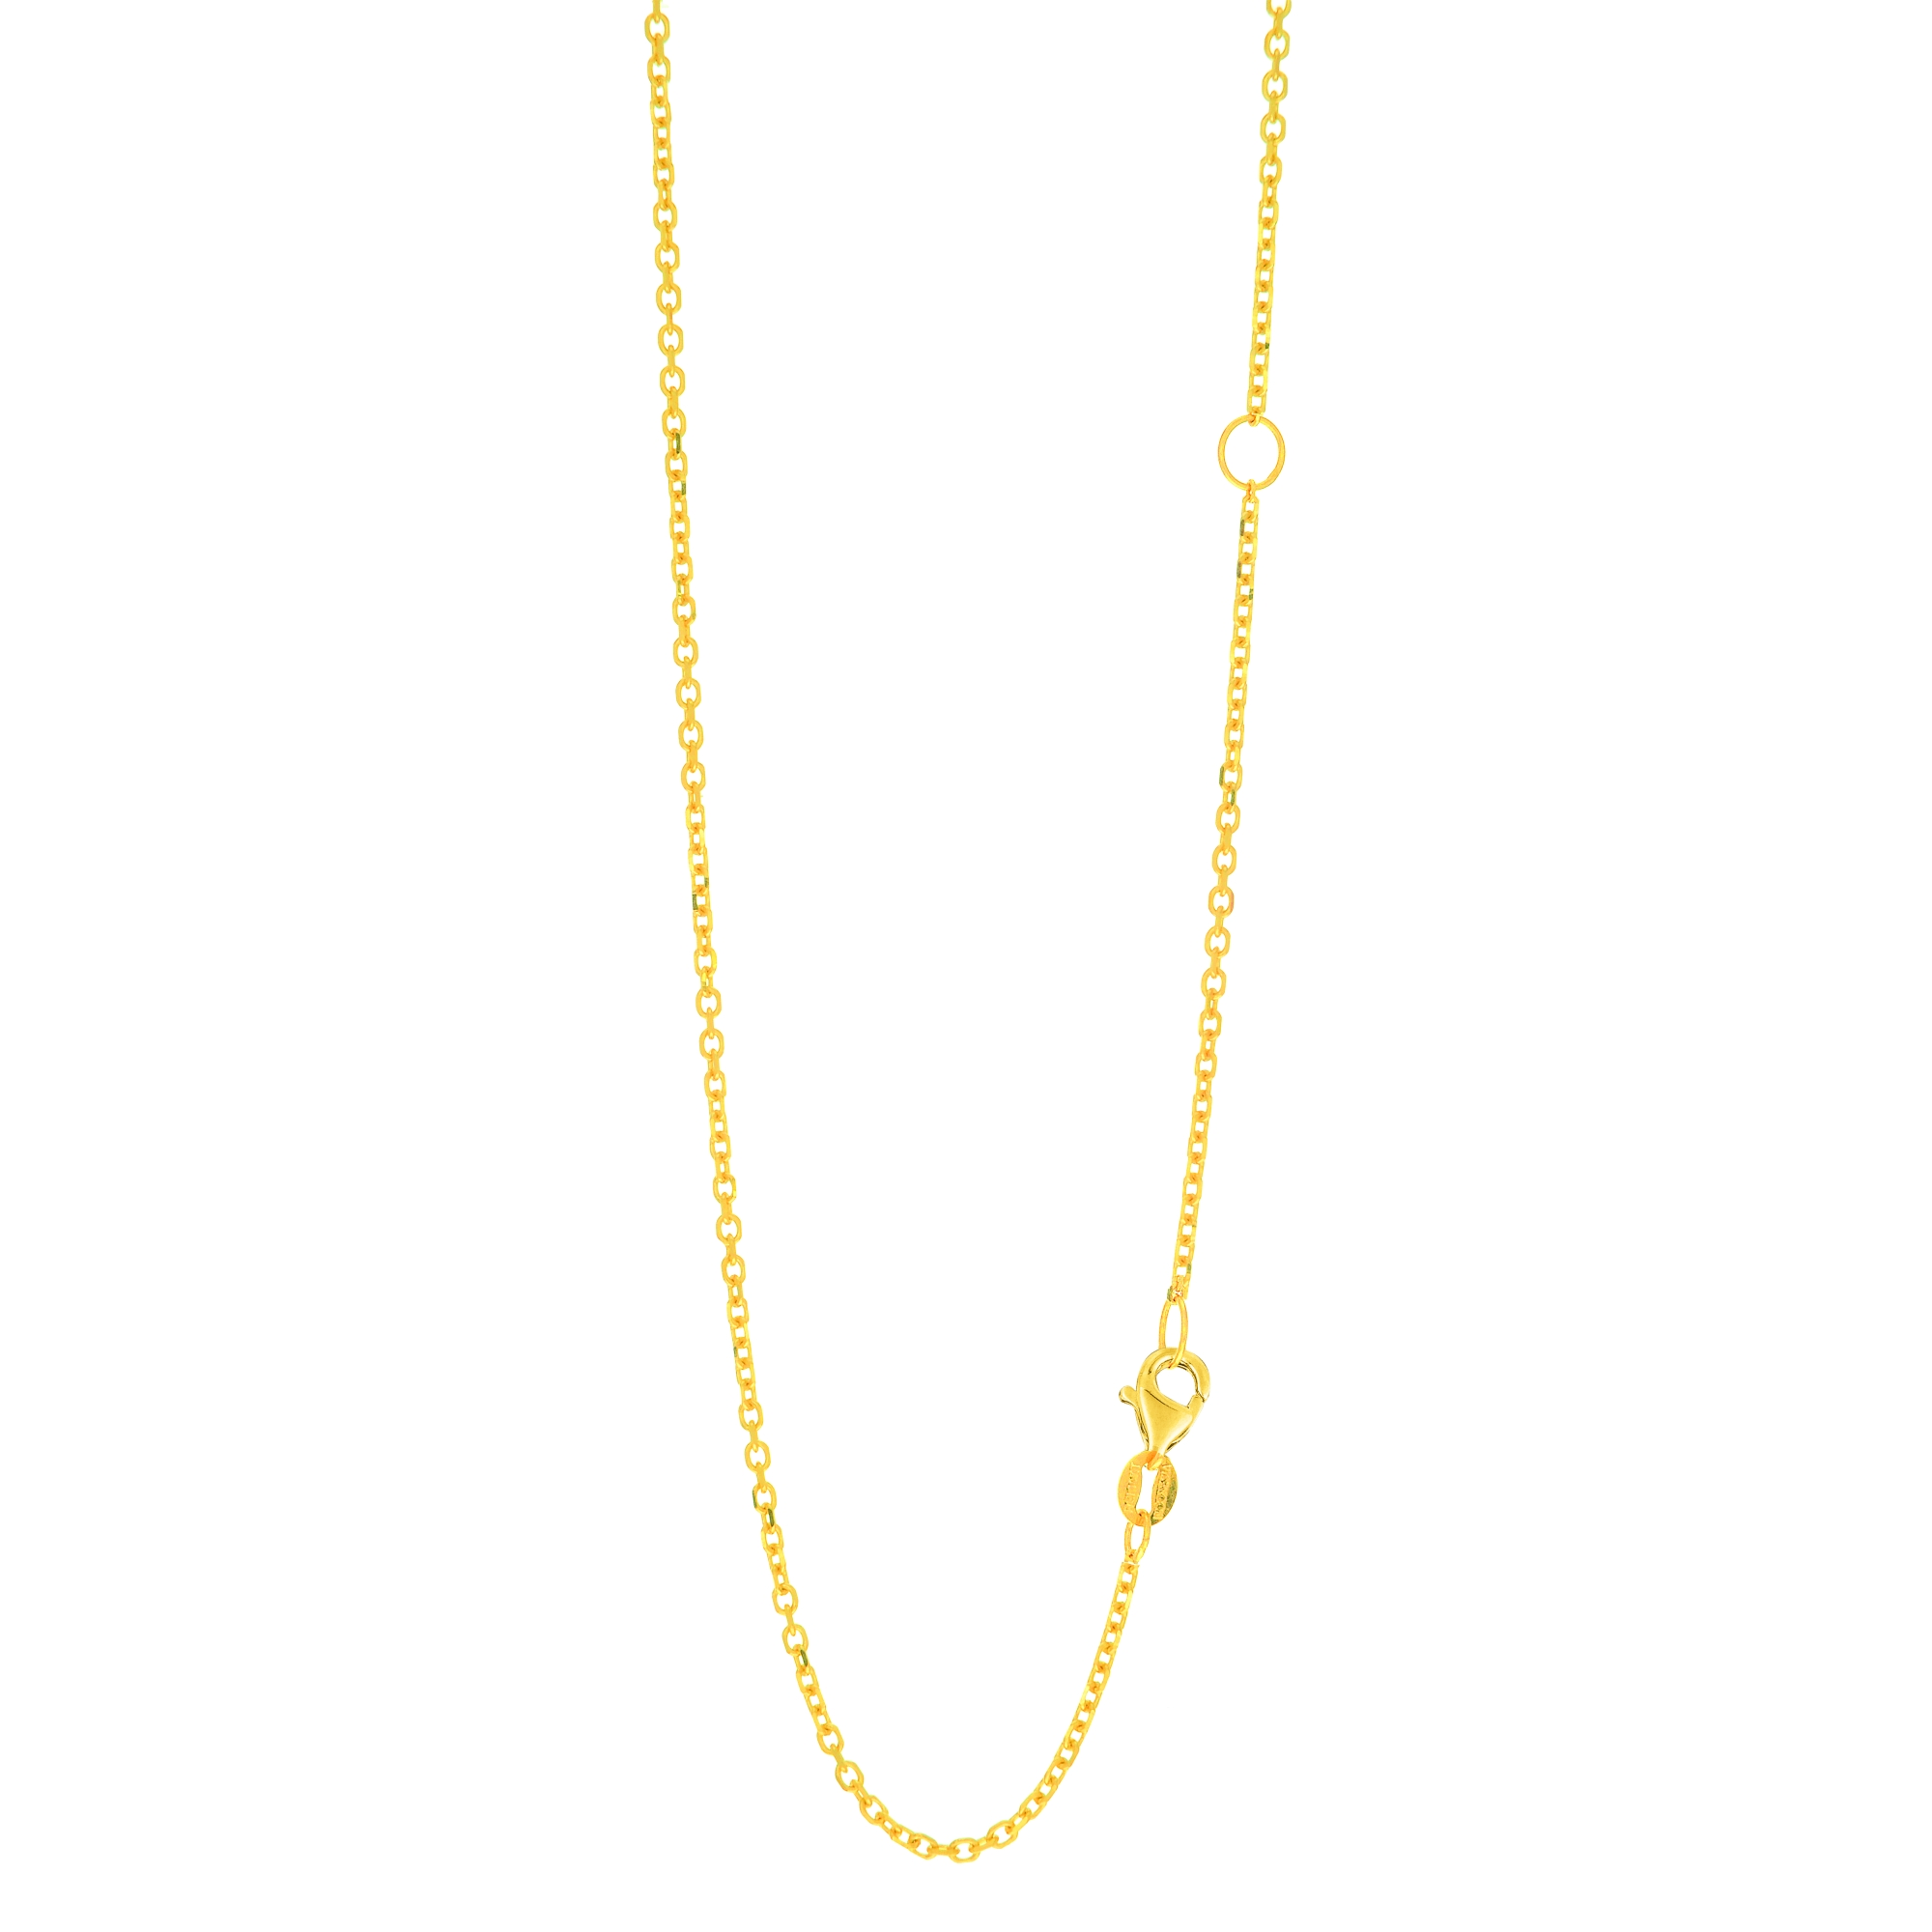 LUXURMAN Solid 14k Gold Cable Chain For Women Extendable 1.5mm Wide Yellow Image